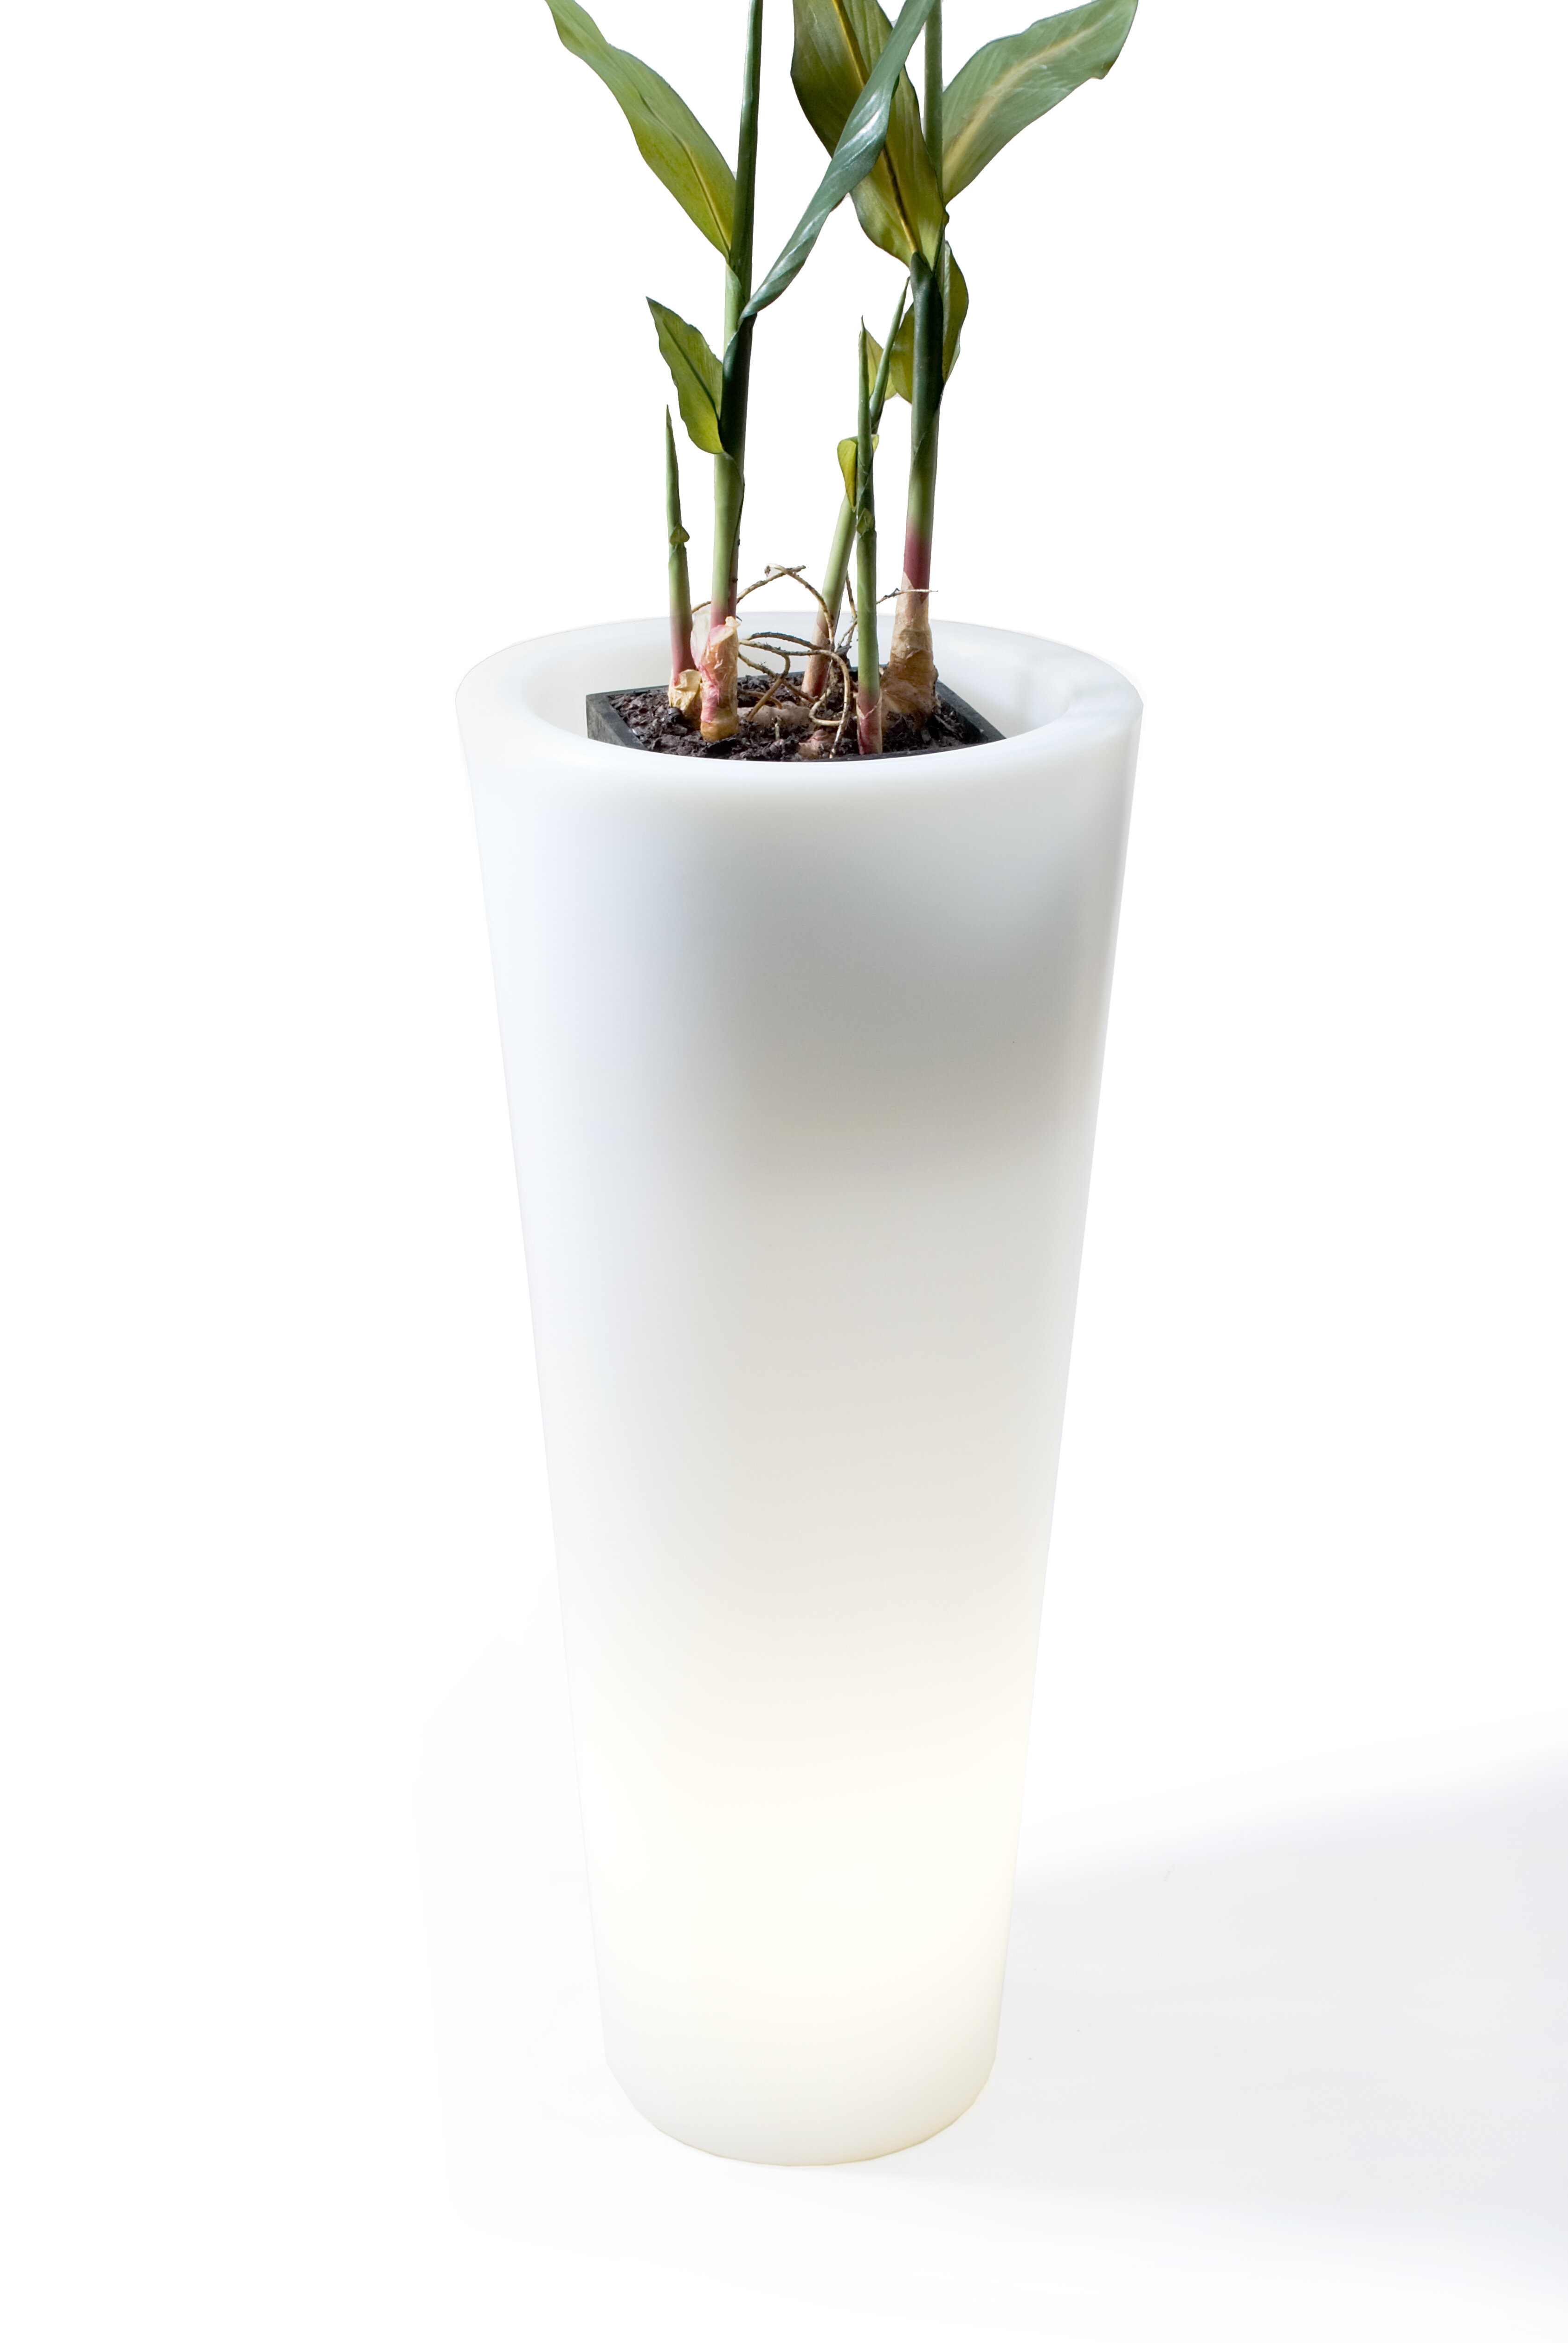 Offi Luminous Pots 1 Piece Plastic Pot Planter Wayfair